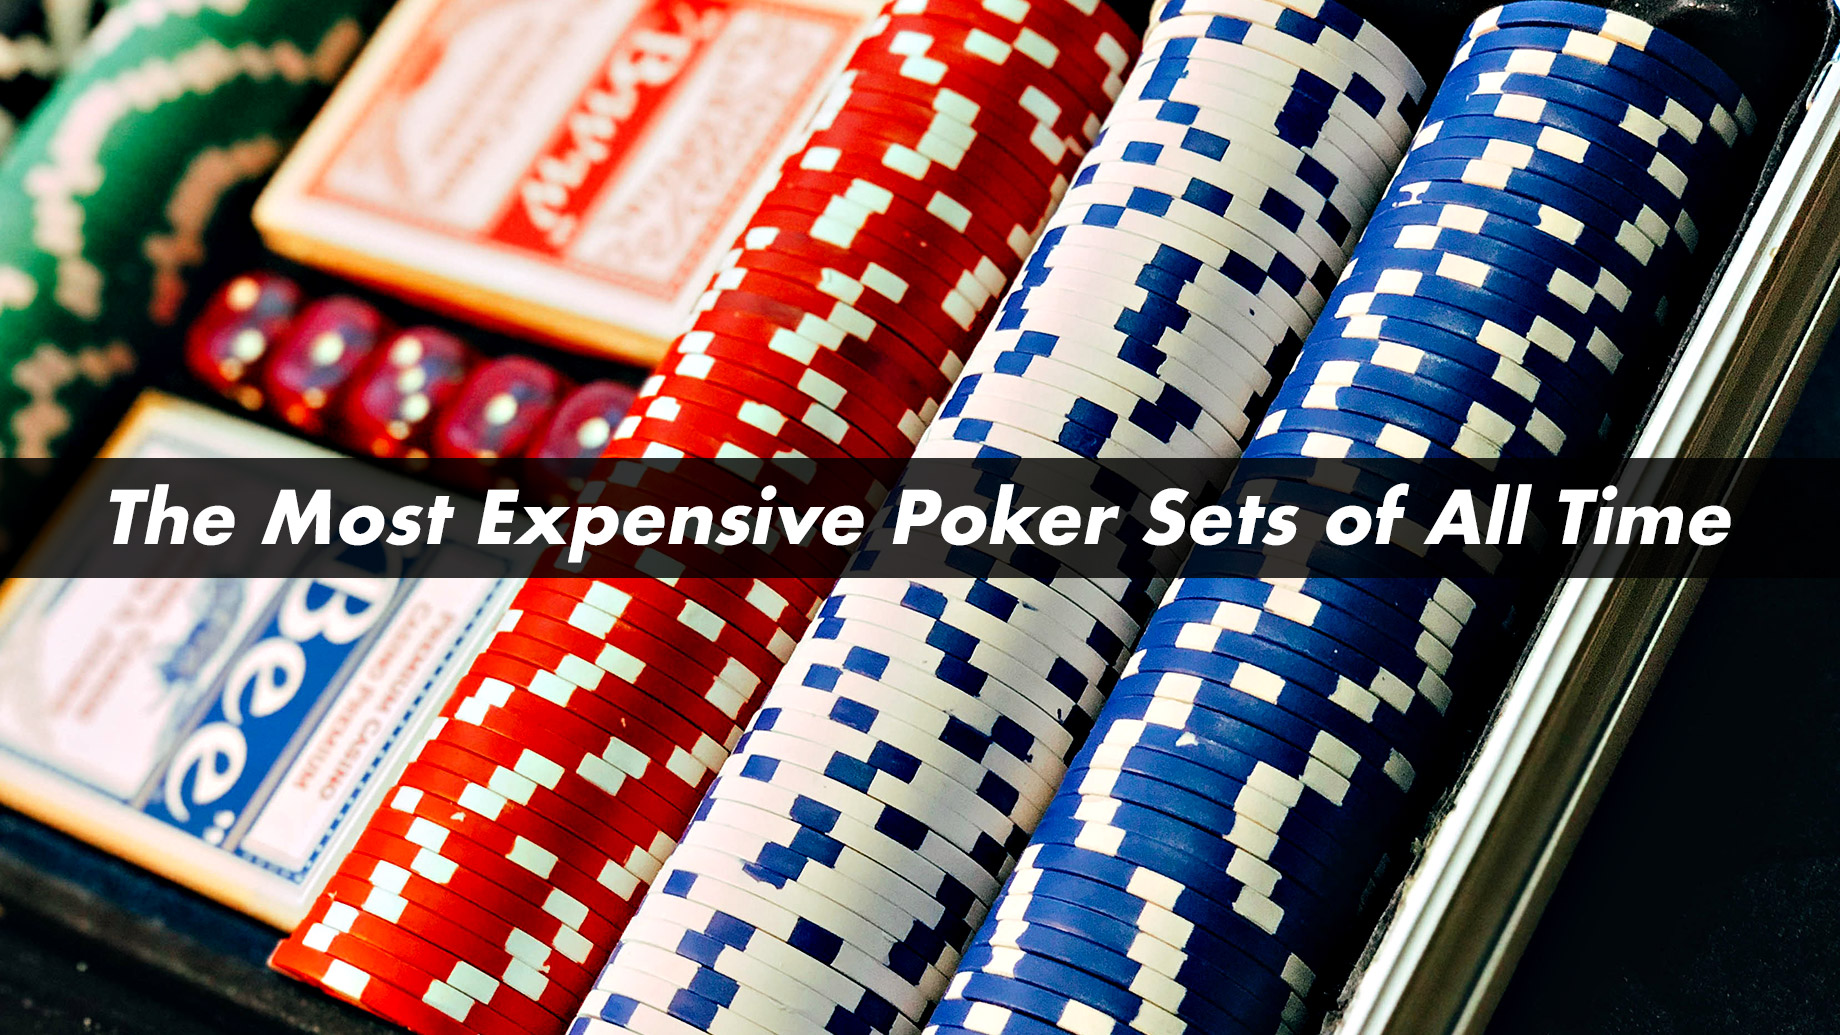 The Most Expensive Poker Sets of All Time